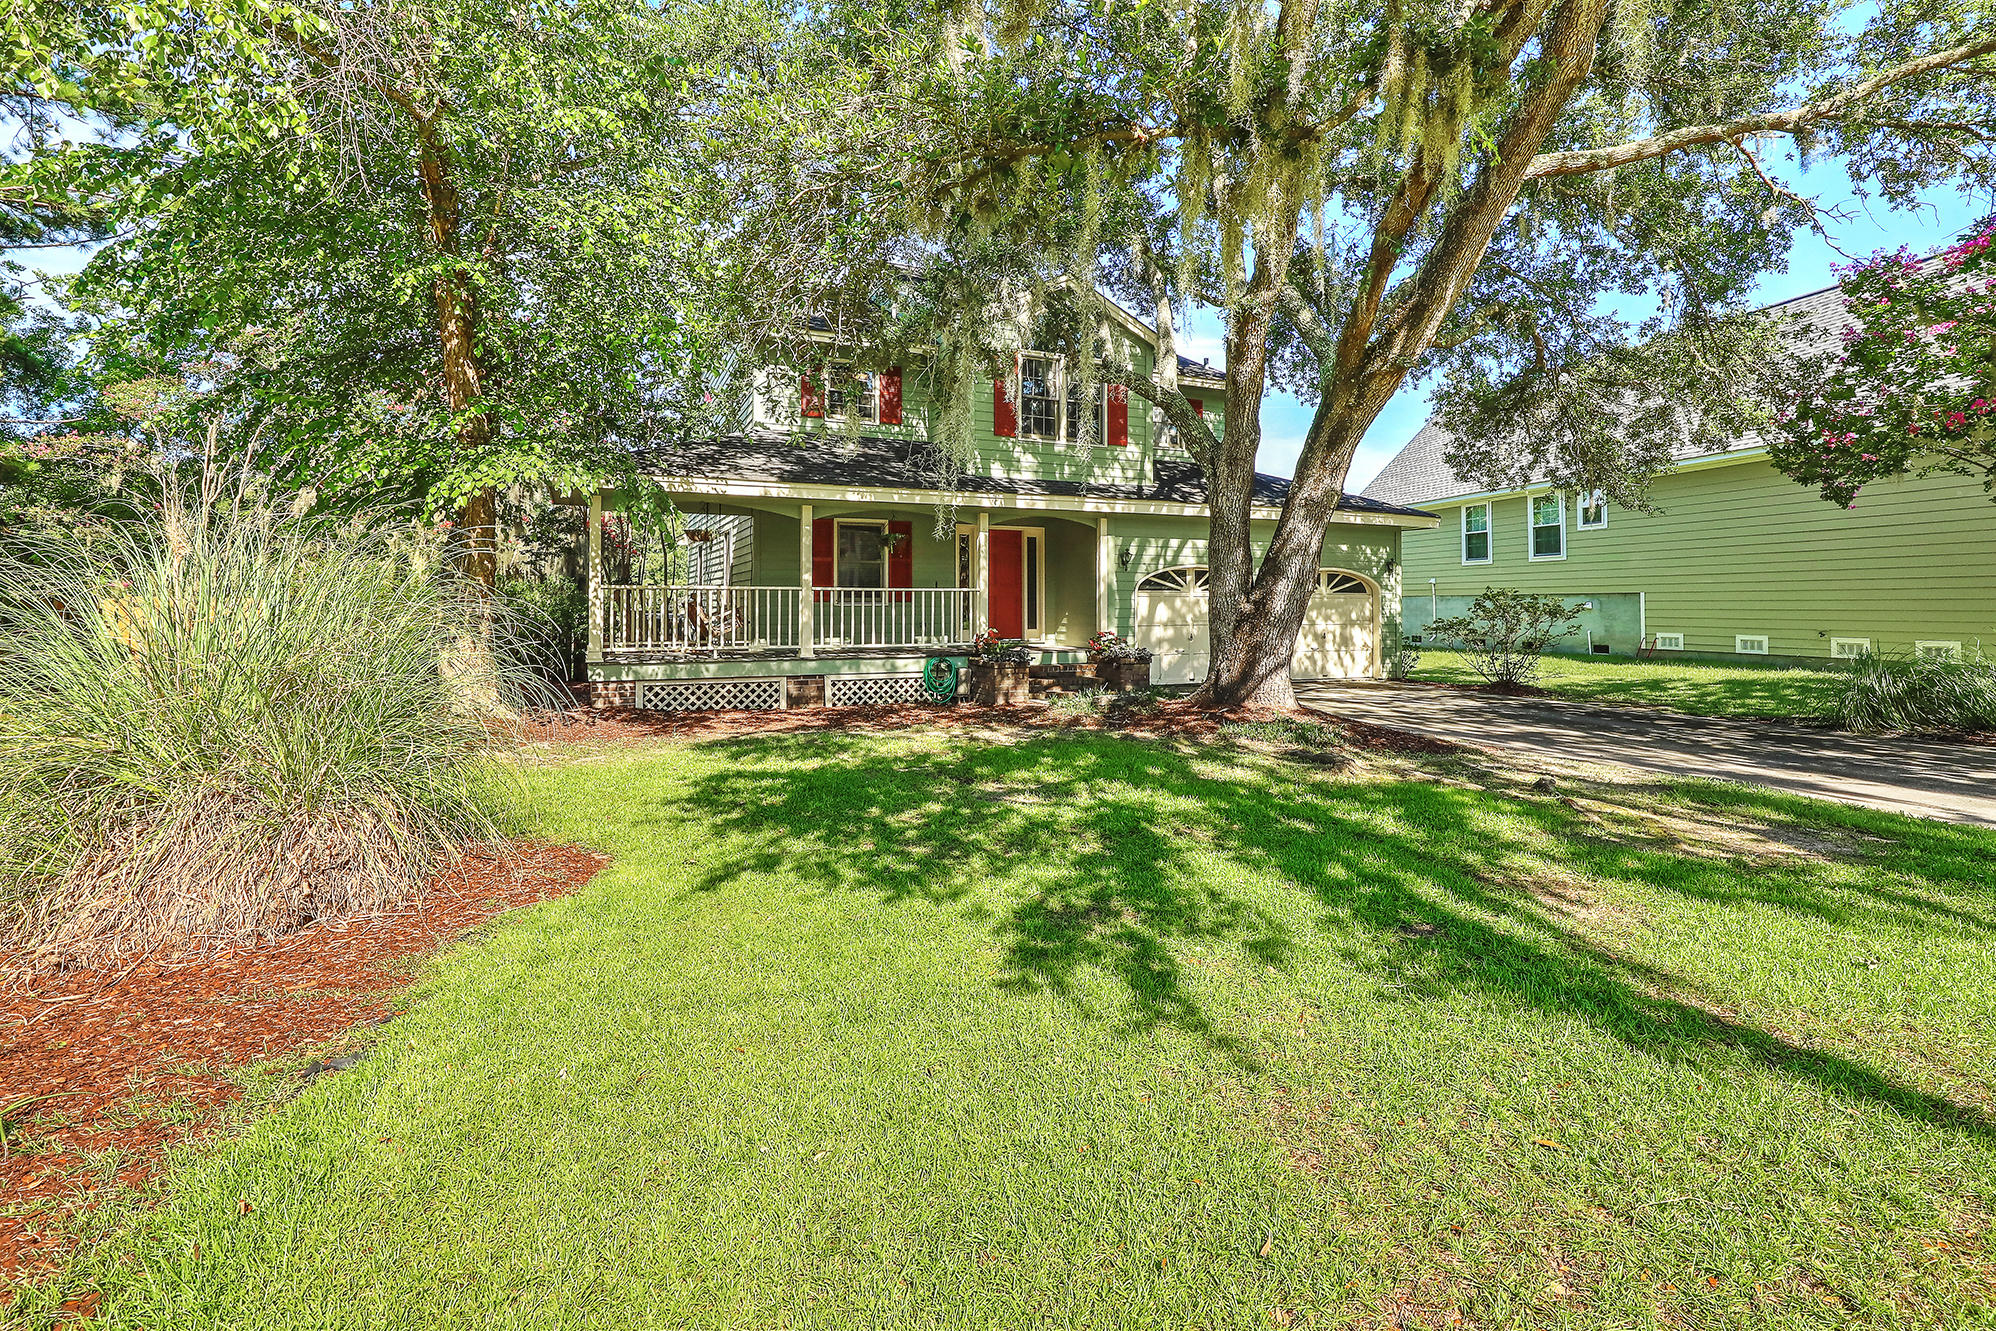 Rice Hollow Homes For Sale - 1729 Sandcroft, Charleston, SC - 5